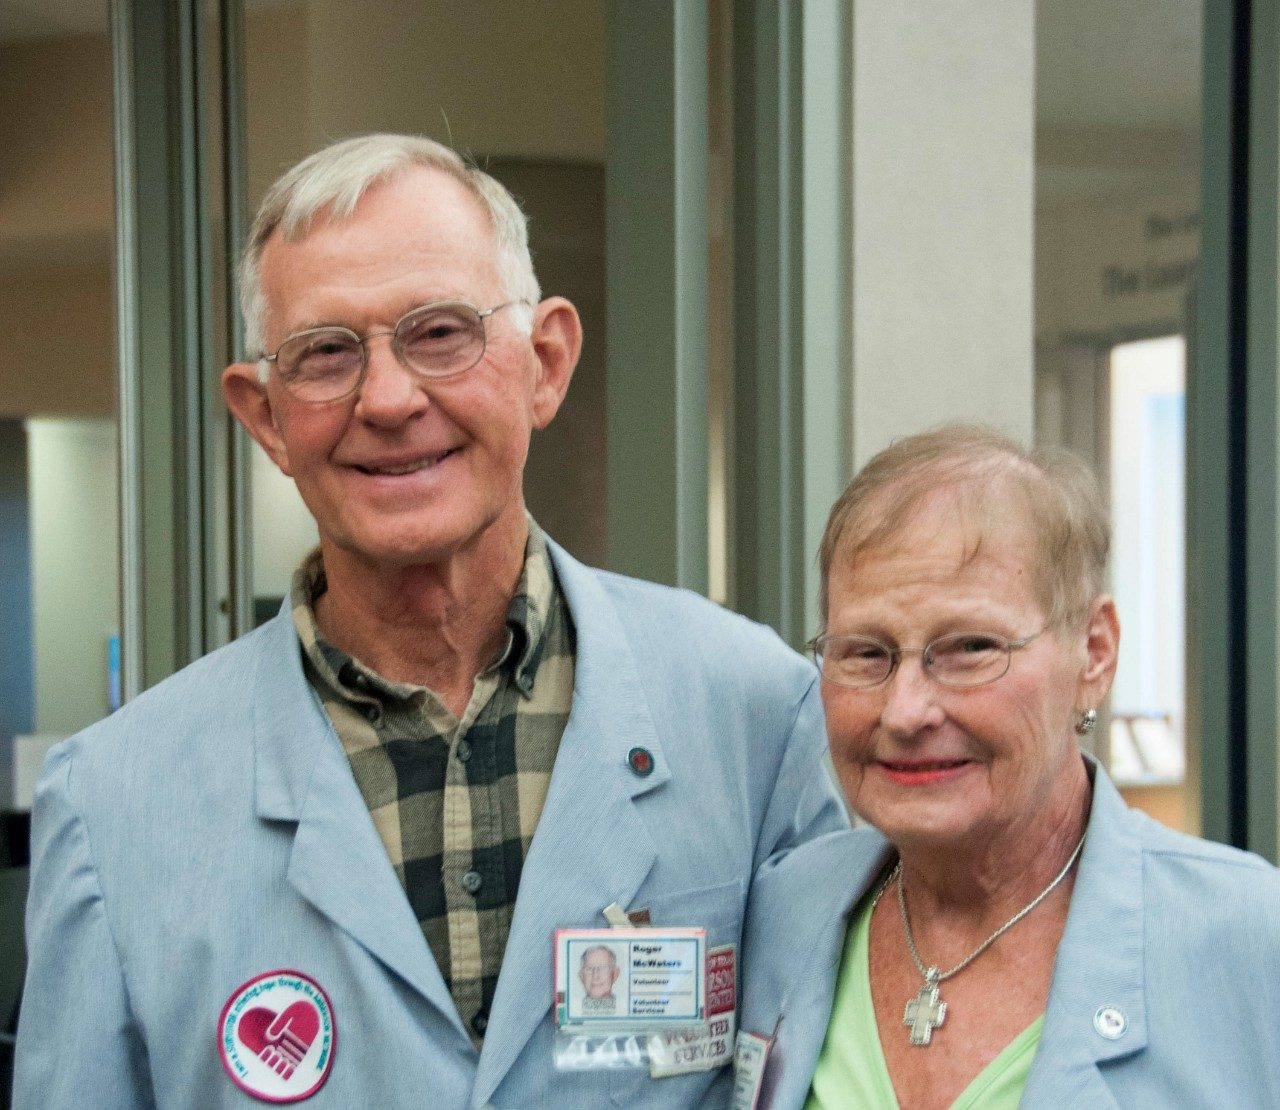 Cancerwise blog post: MD Anderson volunteer Roger McWaters and his late wife, Pat McWaters